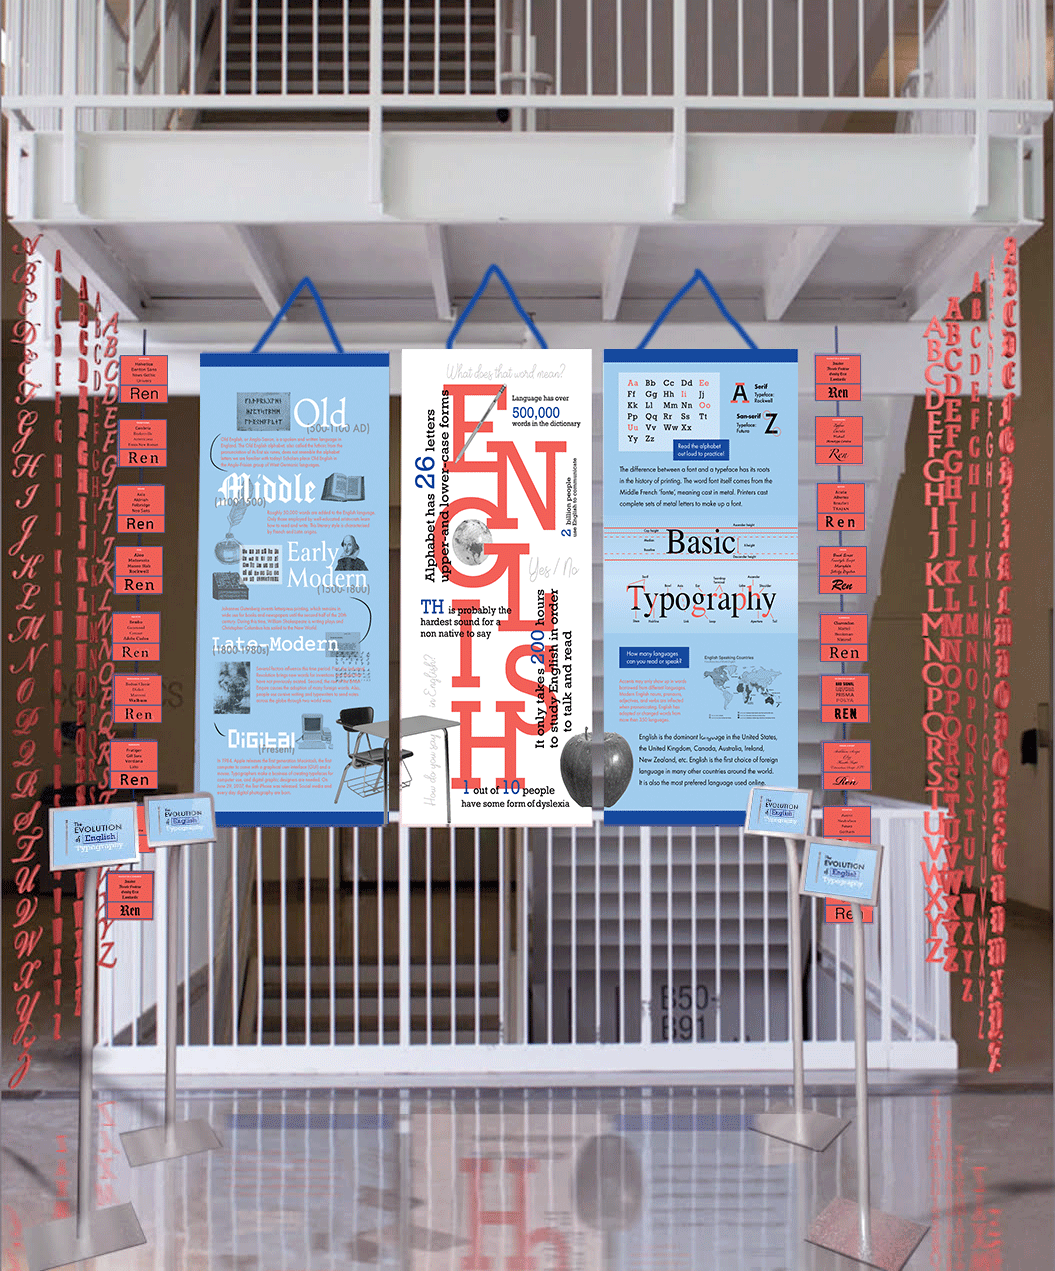 The Evolution of English Typography Exhibition with banners, iPads, and hanging alphabets